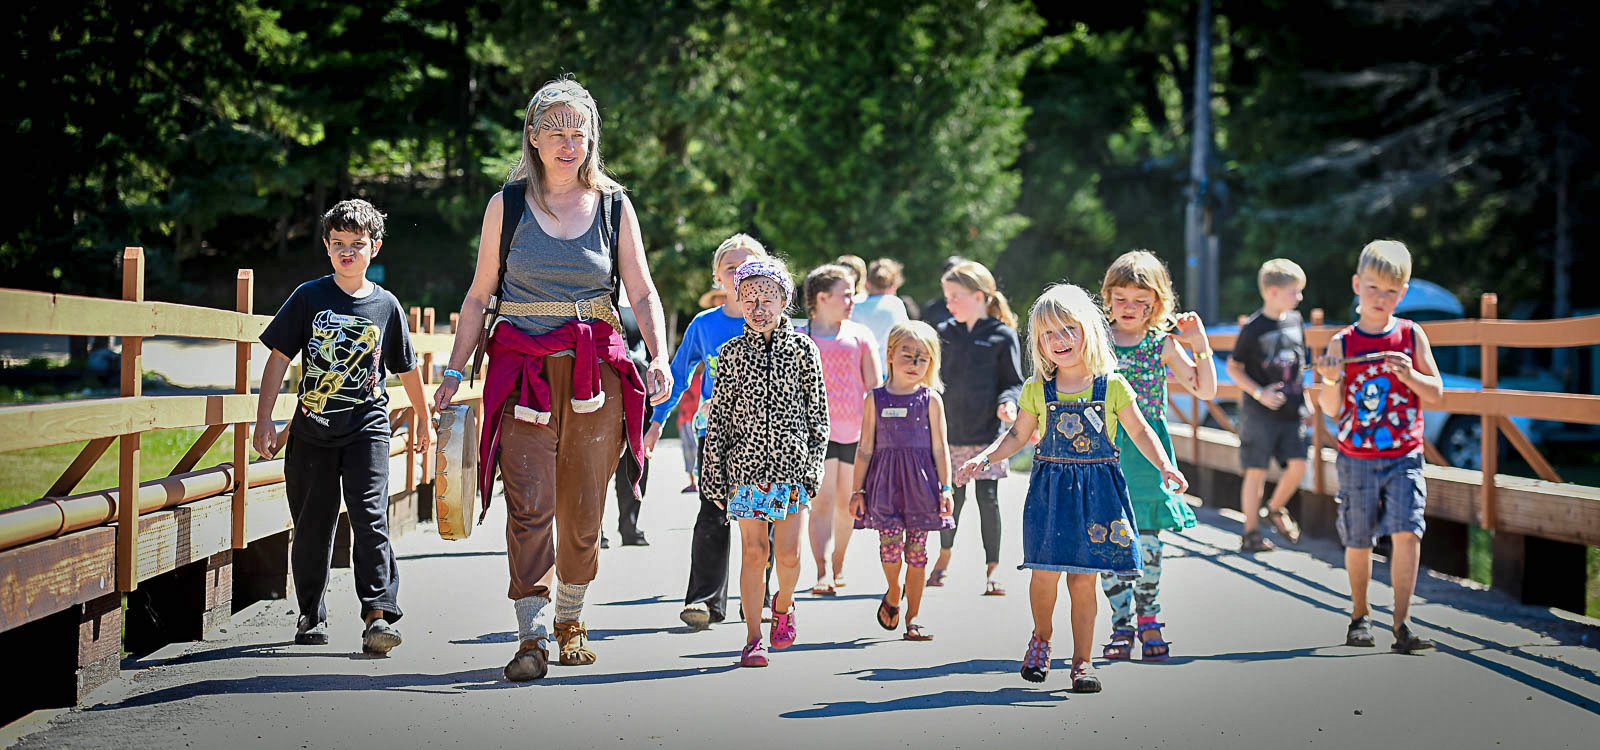 Rowena Conahan leads a pack of children across a bridge spanning the Pigeon River, as part of the interactive Family Forest Village program at YogaFest 2017.